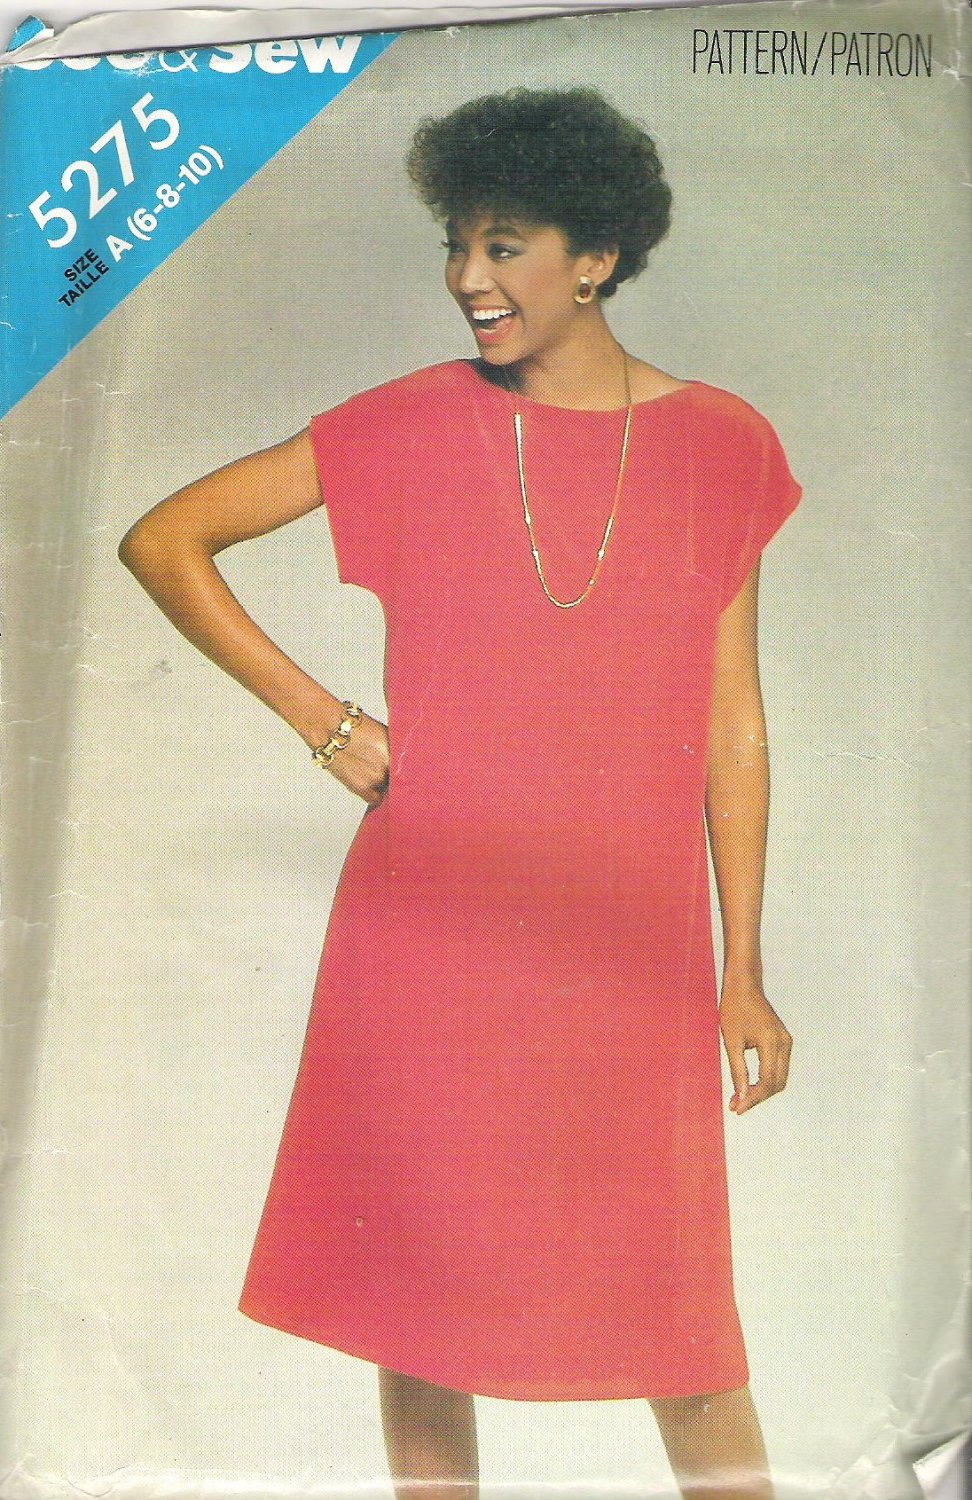 Butterick 5275 Pattern  See & Sew A-Line Pullover Dress  Size 6-10   Cut to 6